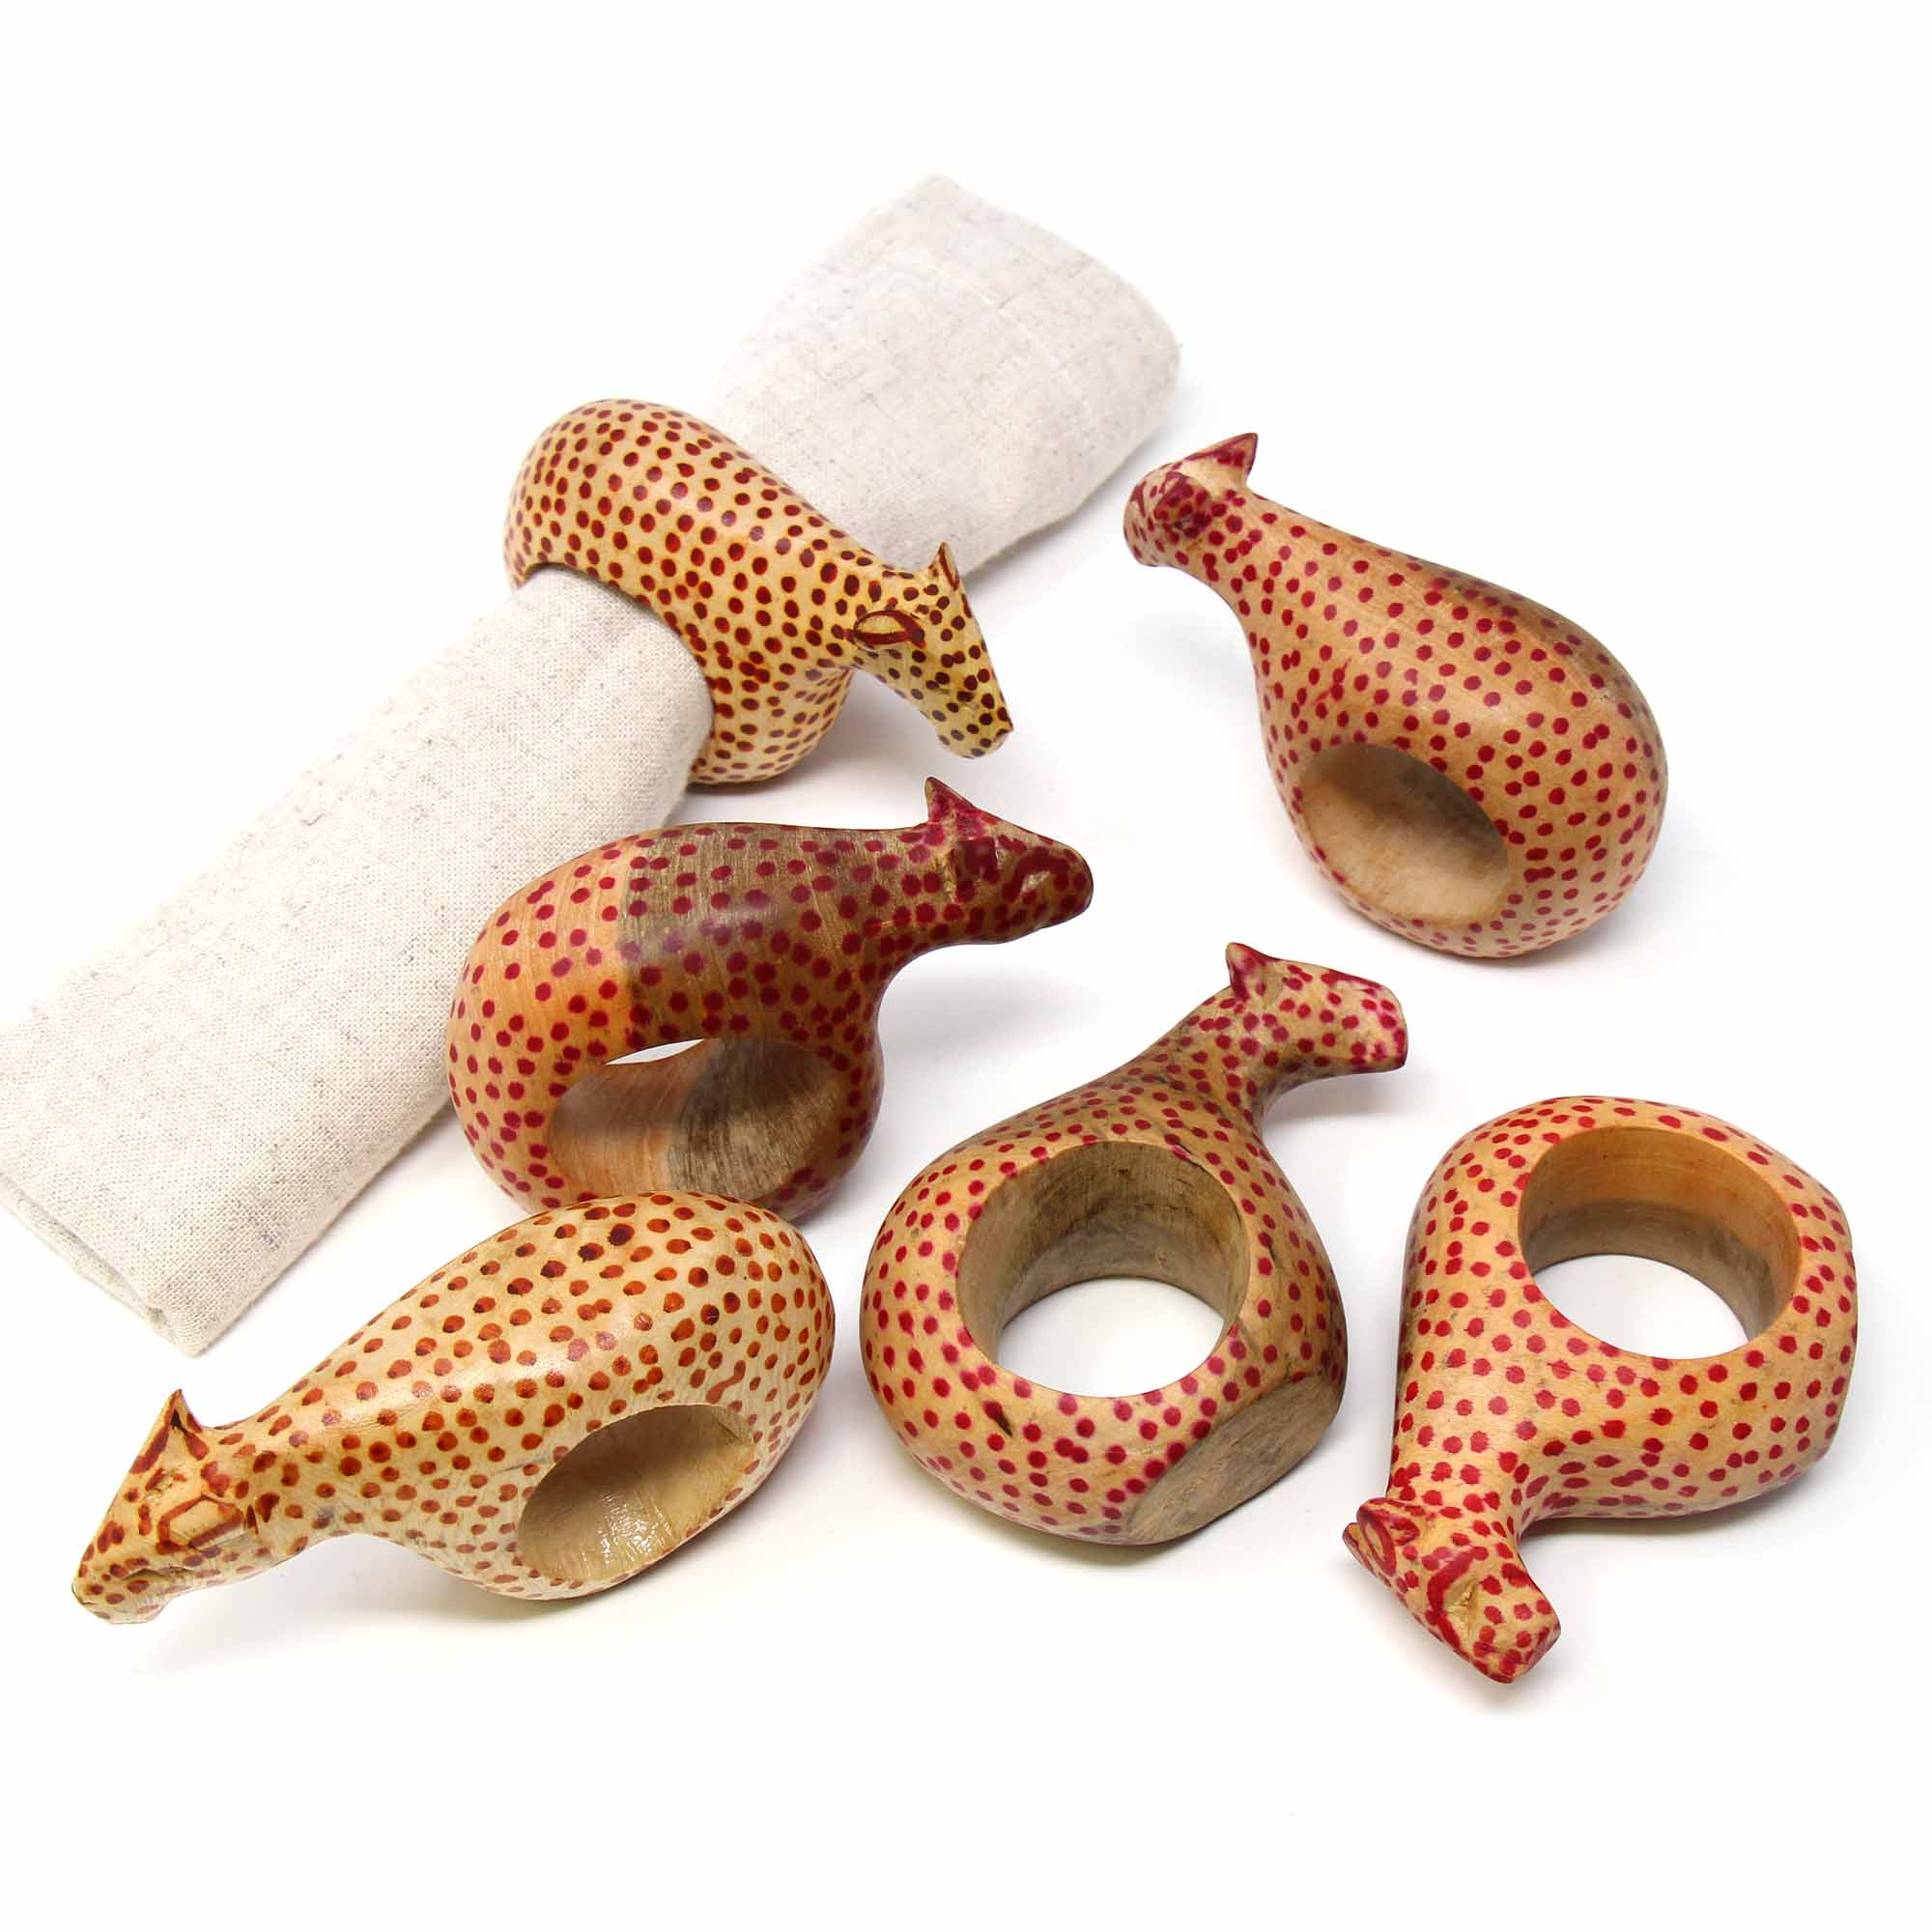 Mahogany Cheetah Napkin Rings, Set of 6